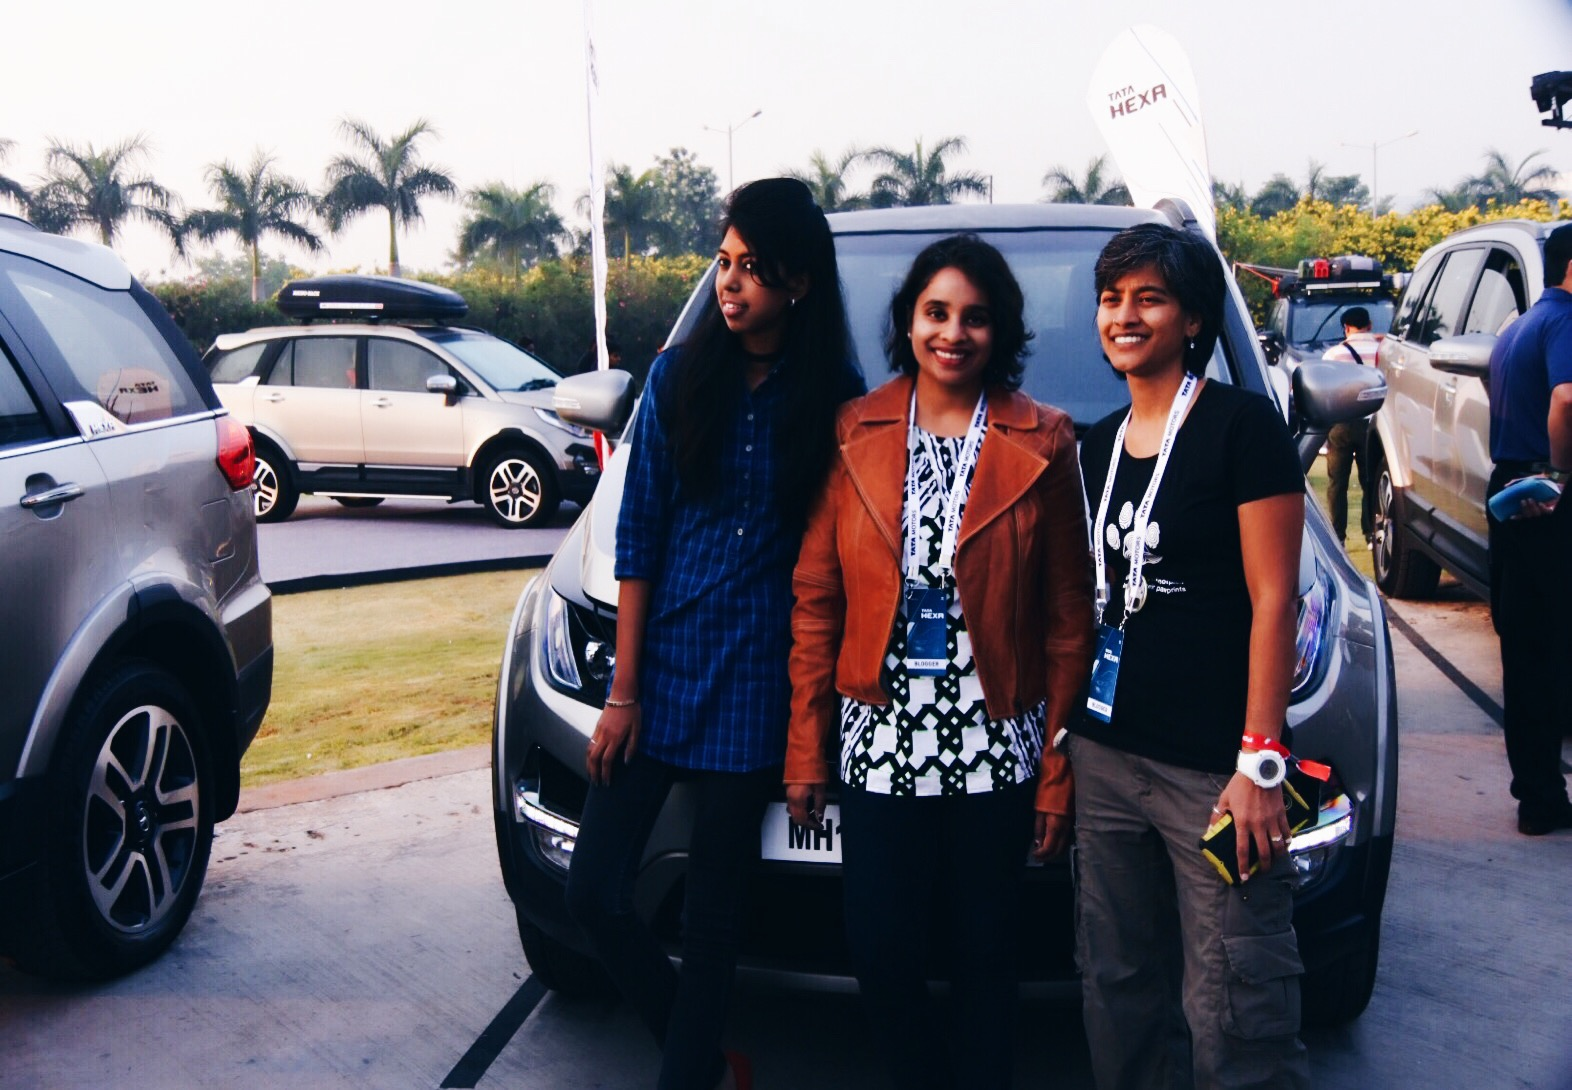 All set for the 170 km drive along Hyderabad's highways